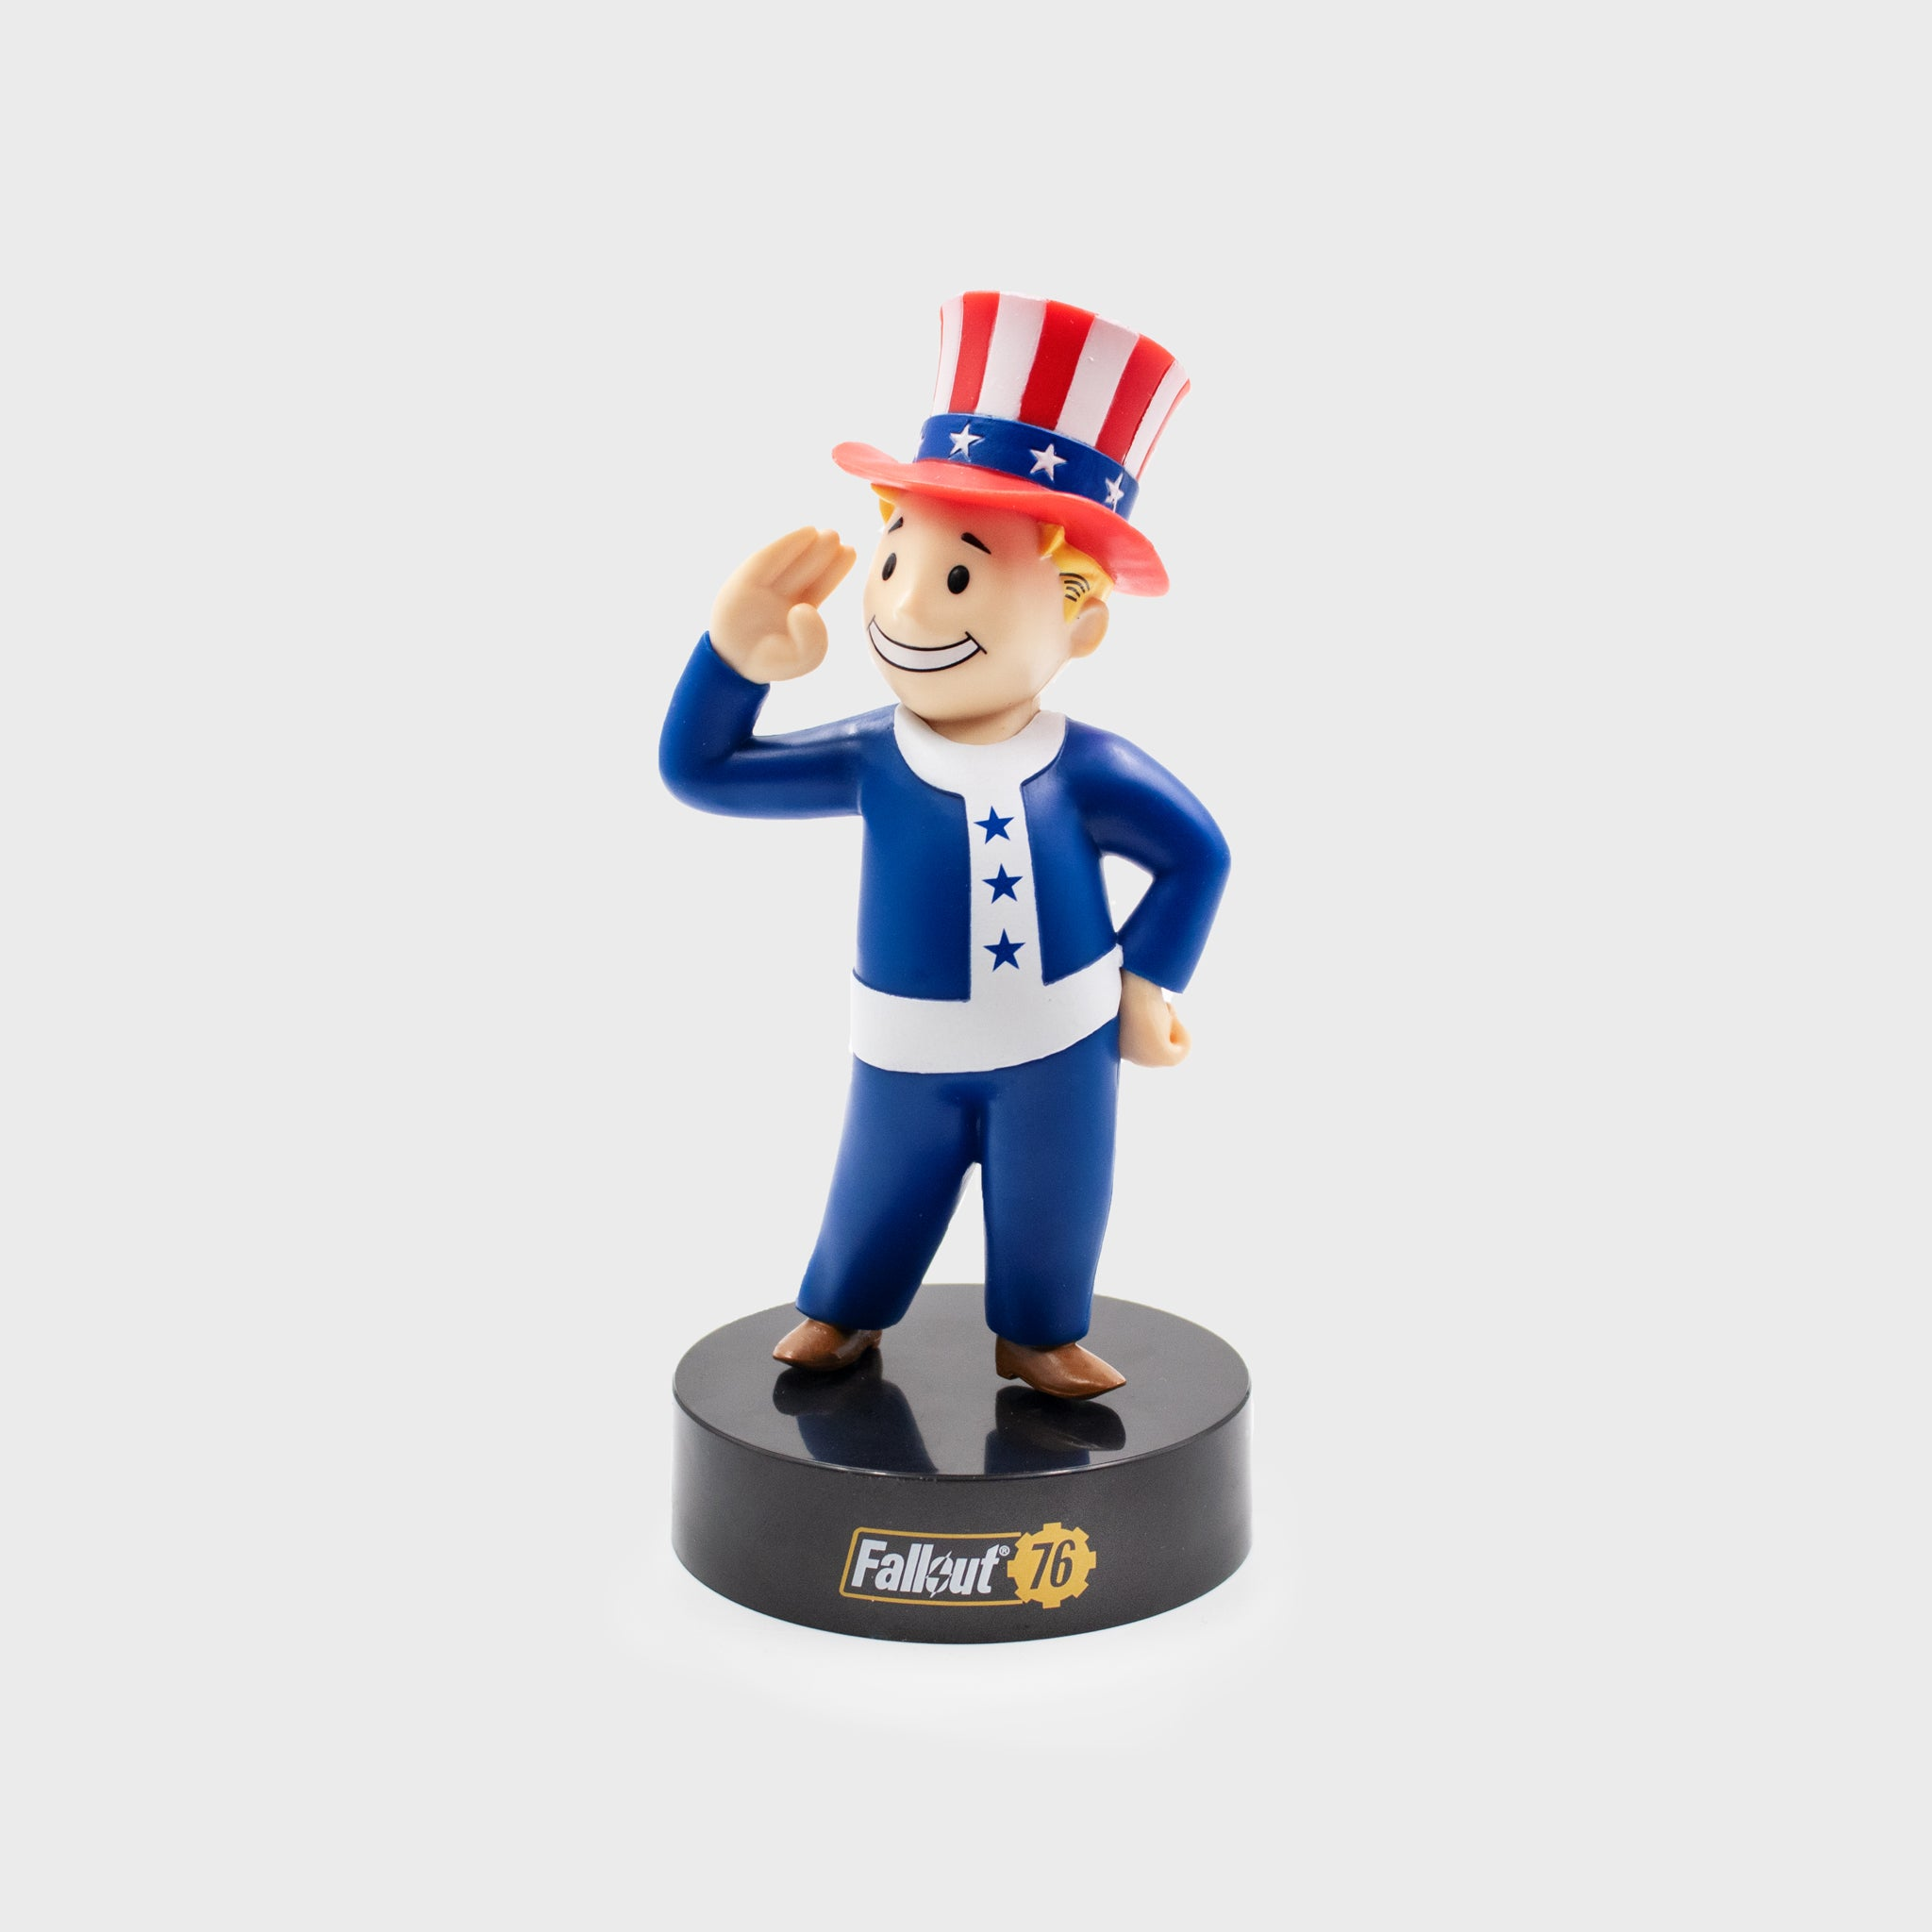 fallout 76 bethesda video game gaming vault boy america collector box collectible exclusive vinyl figure culturefly